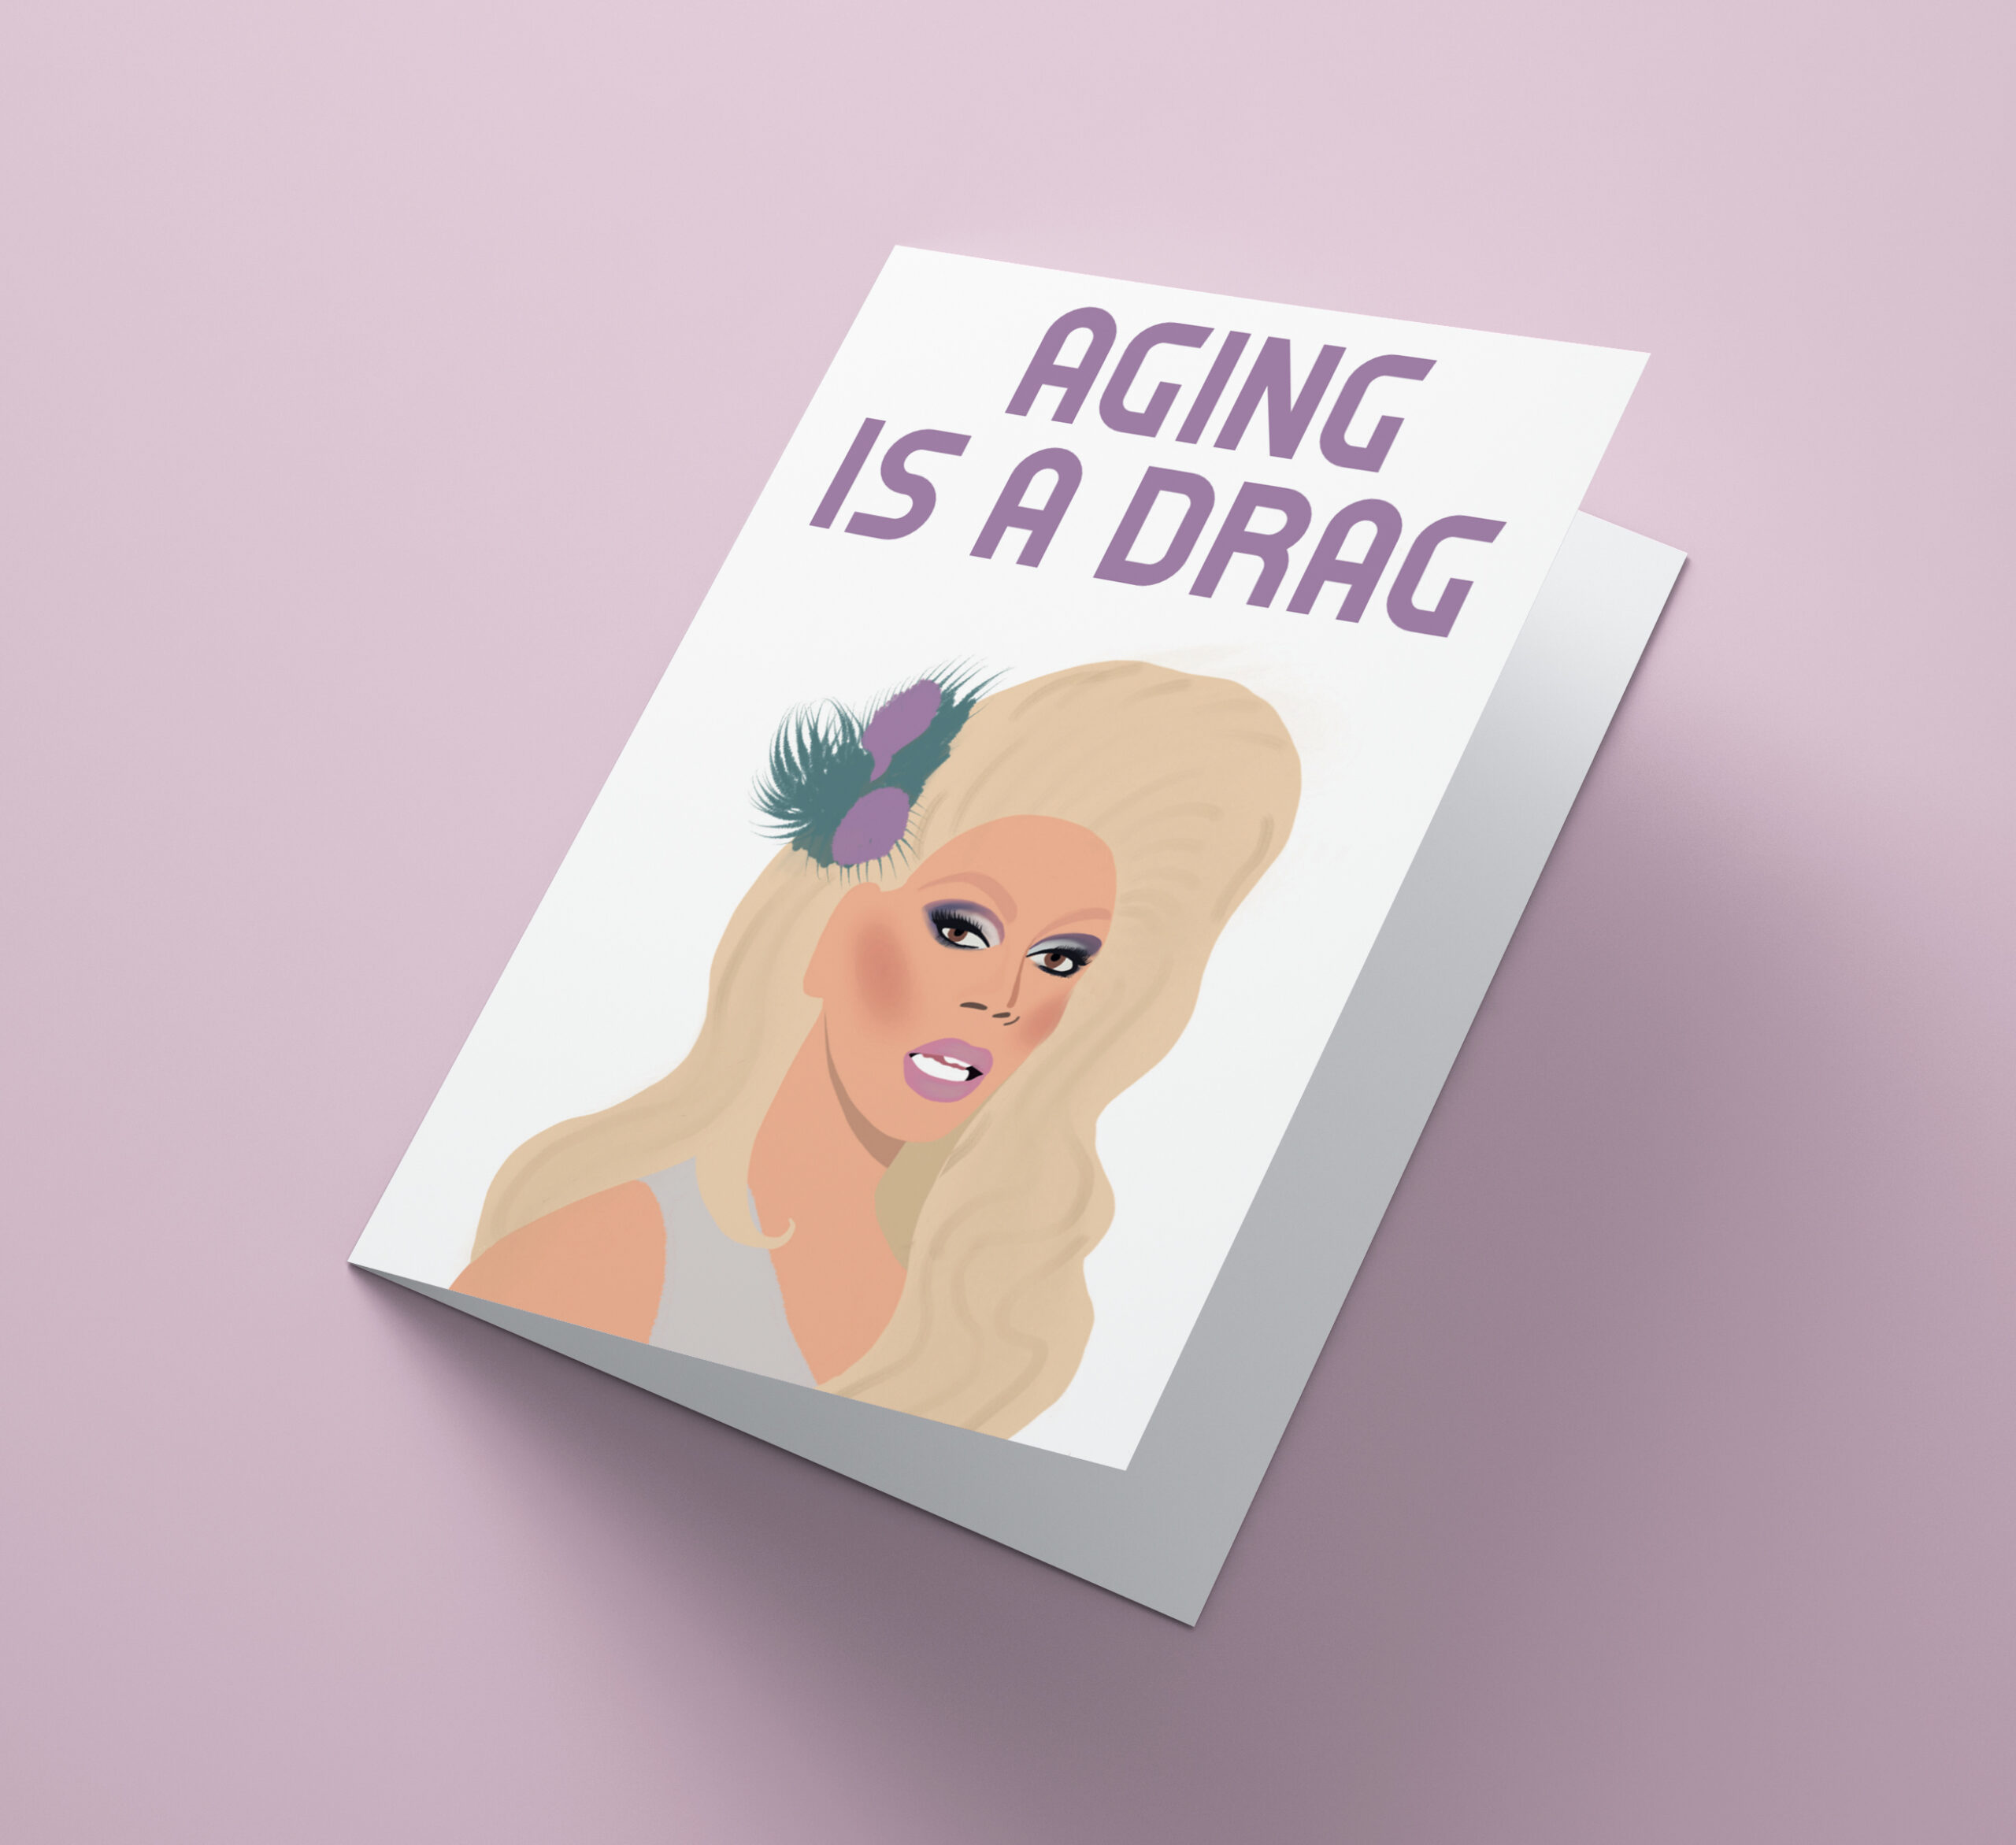 Aging Is A Drag - Rupaul - Netflix